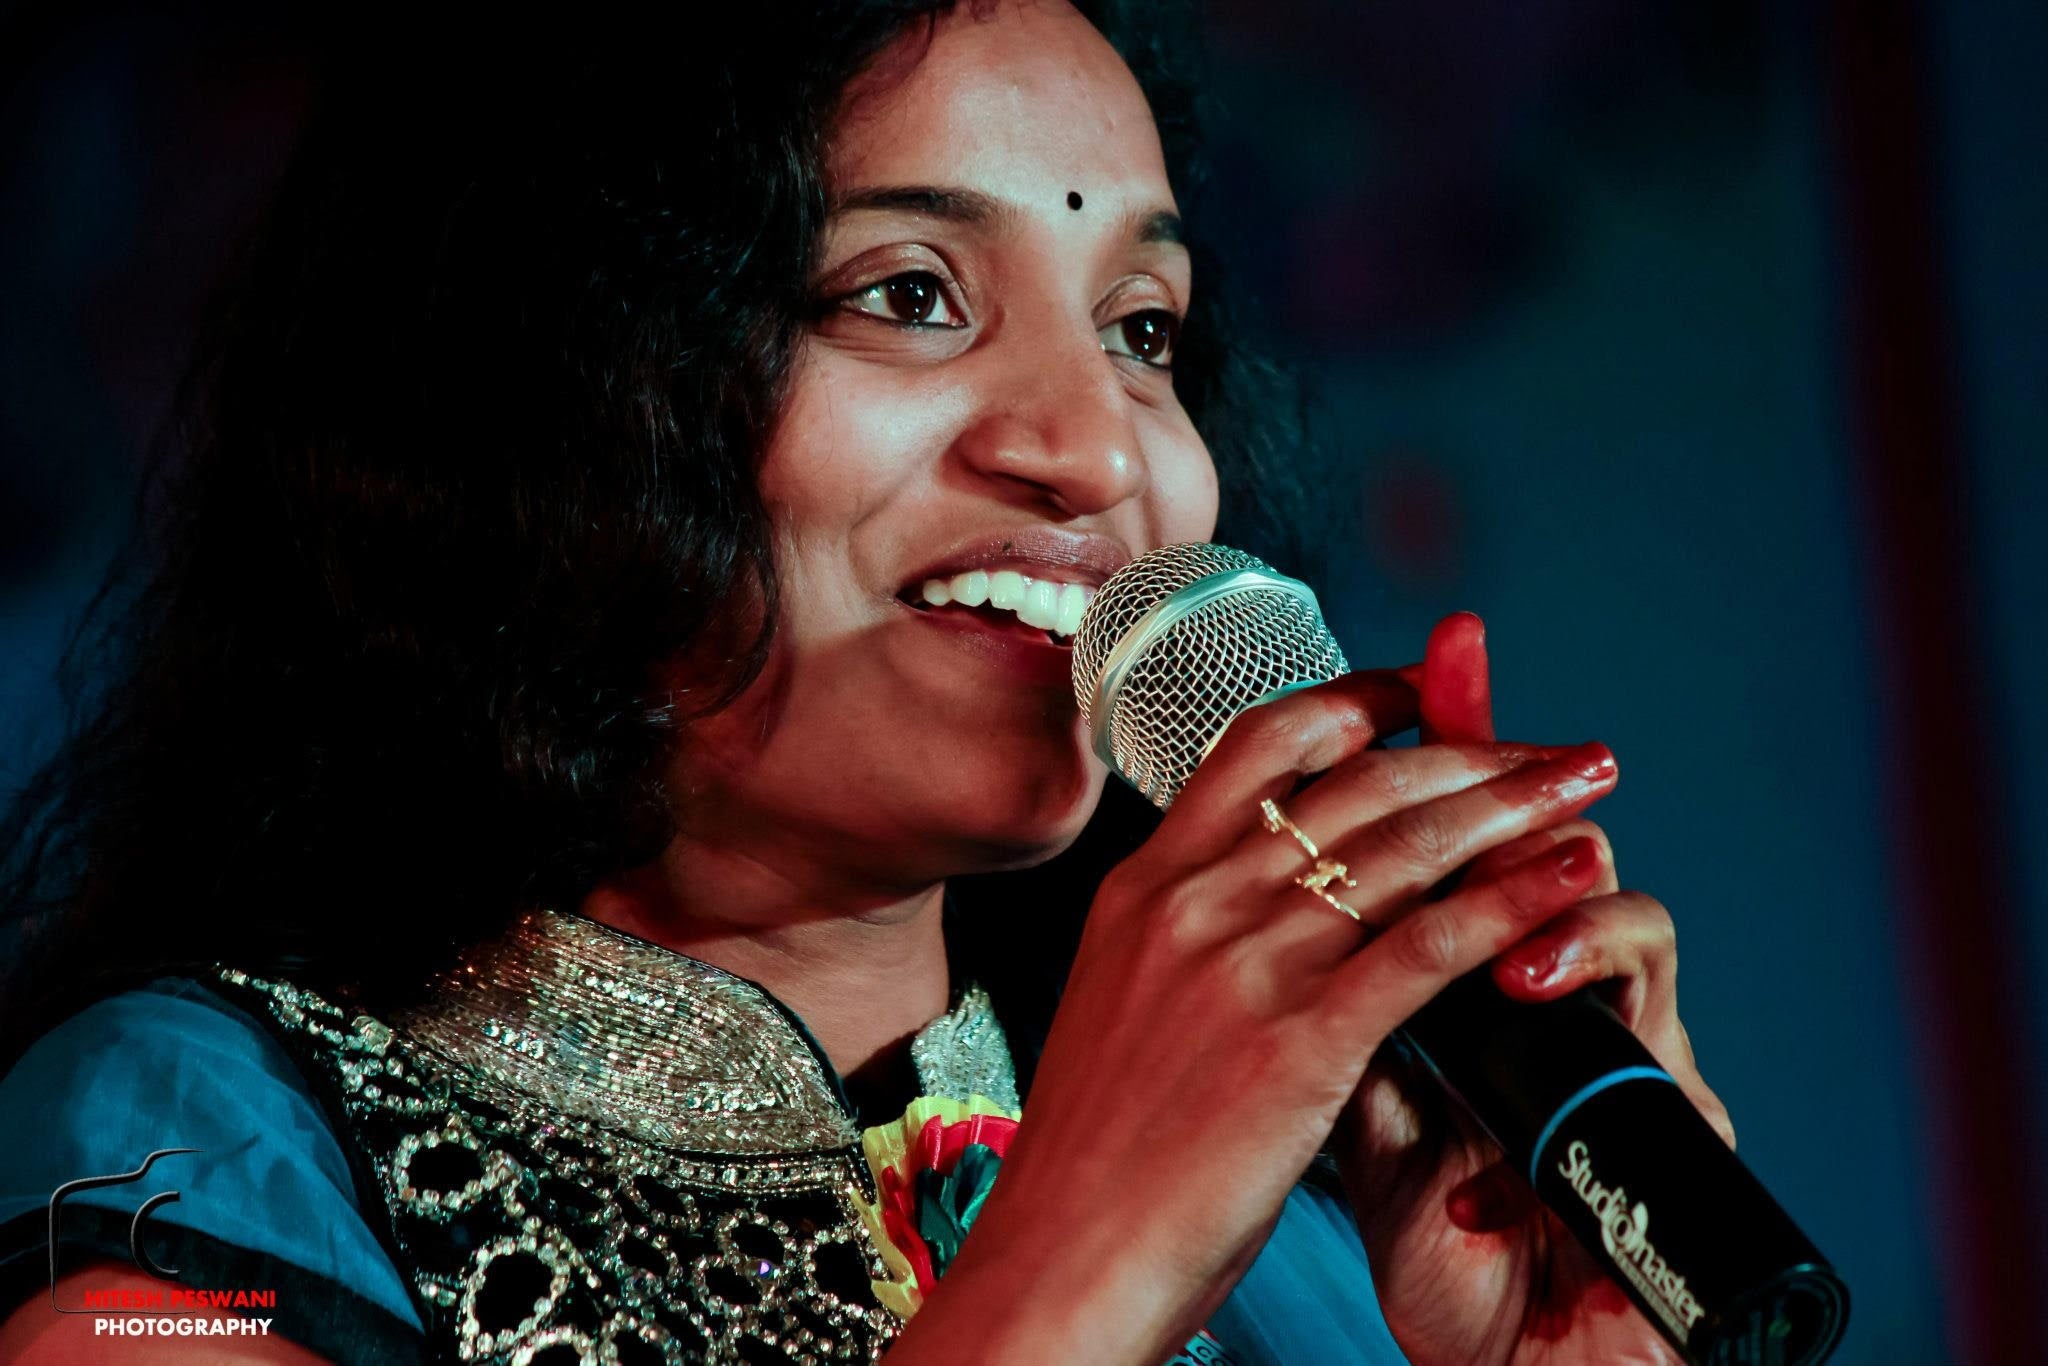 Surprise Video Call from Singer Sahithi - Book Now